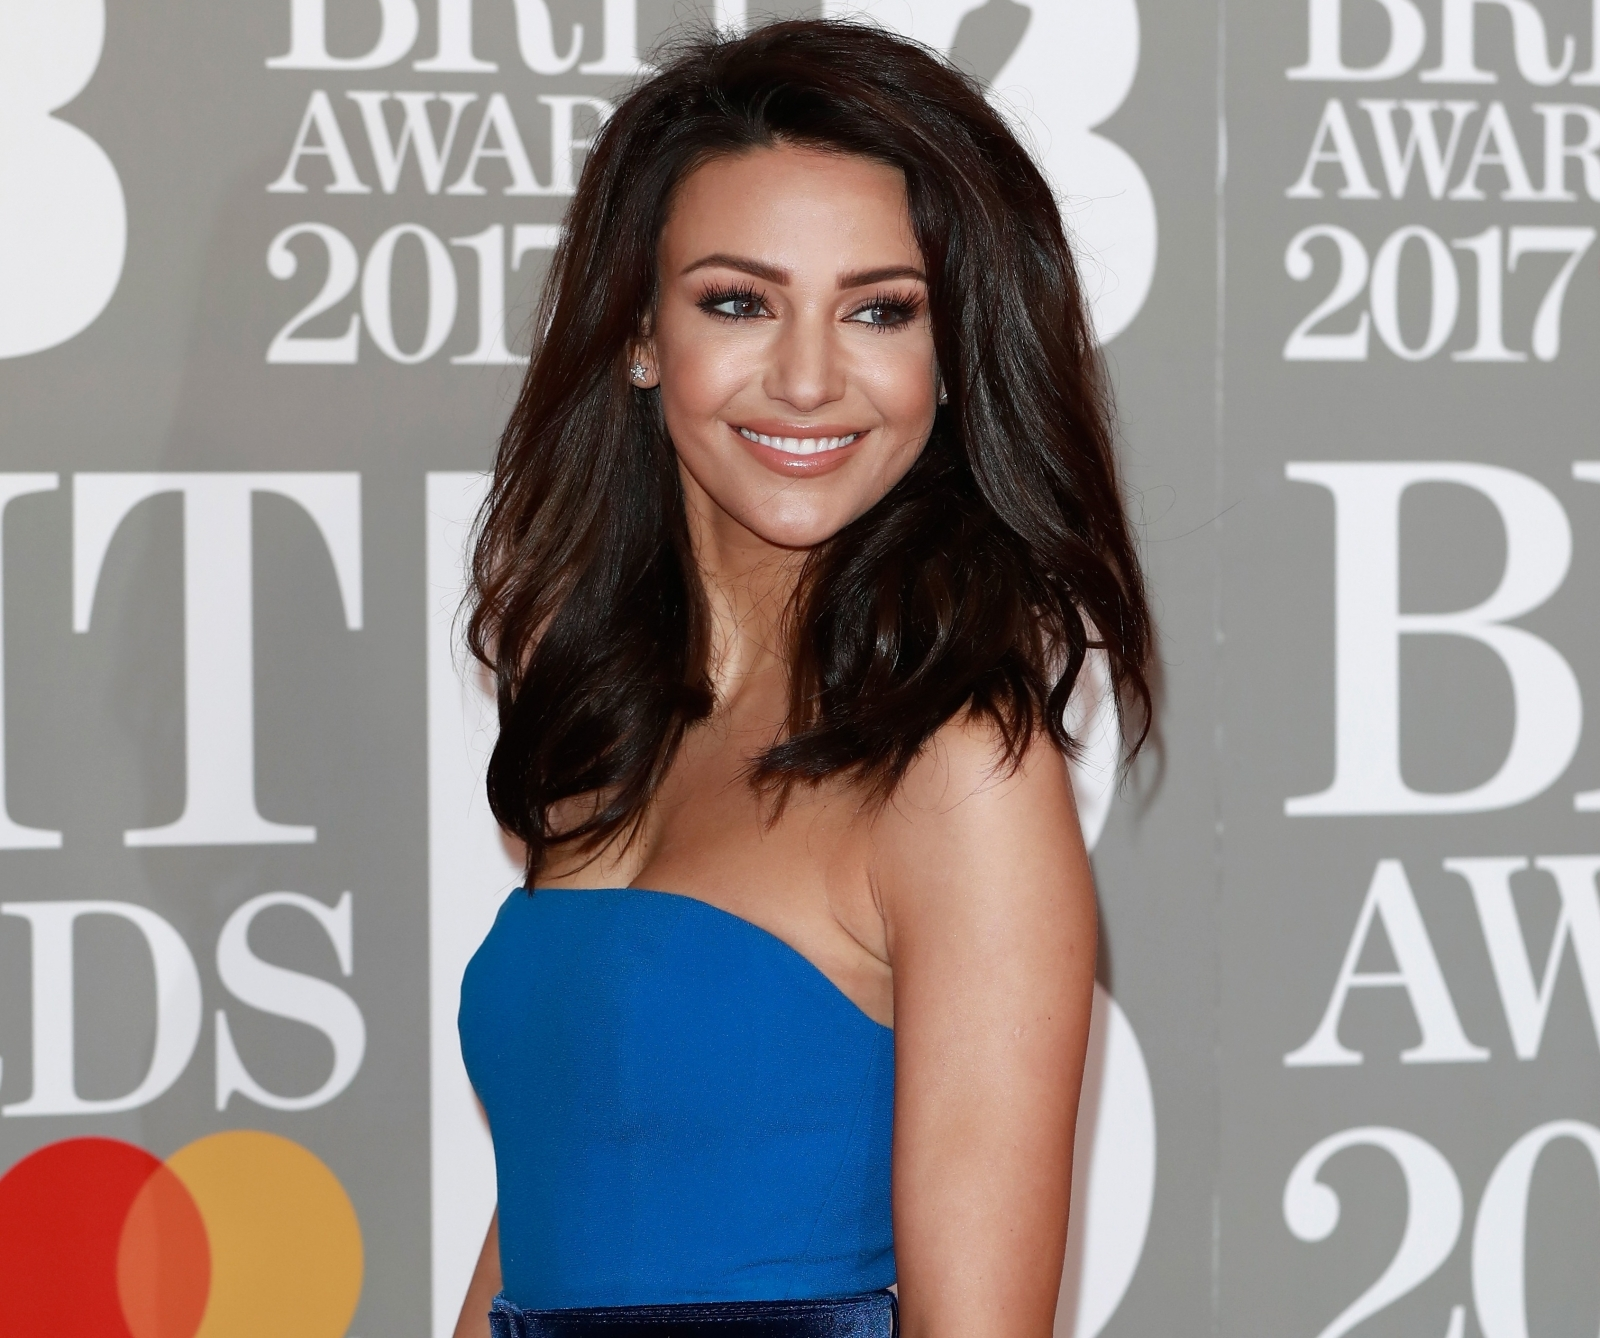 Cleavage Michelle Keegan nude (64 foto and video), Sexy, Bikini, Instagram, swimsuit 2018